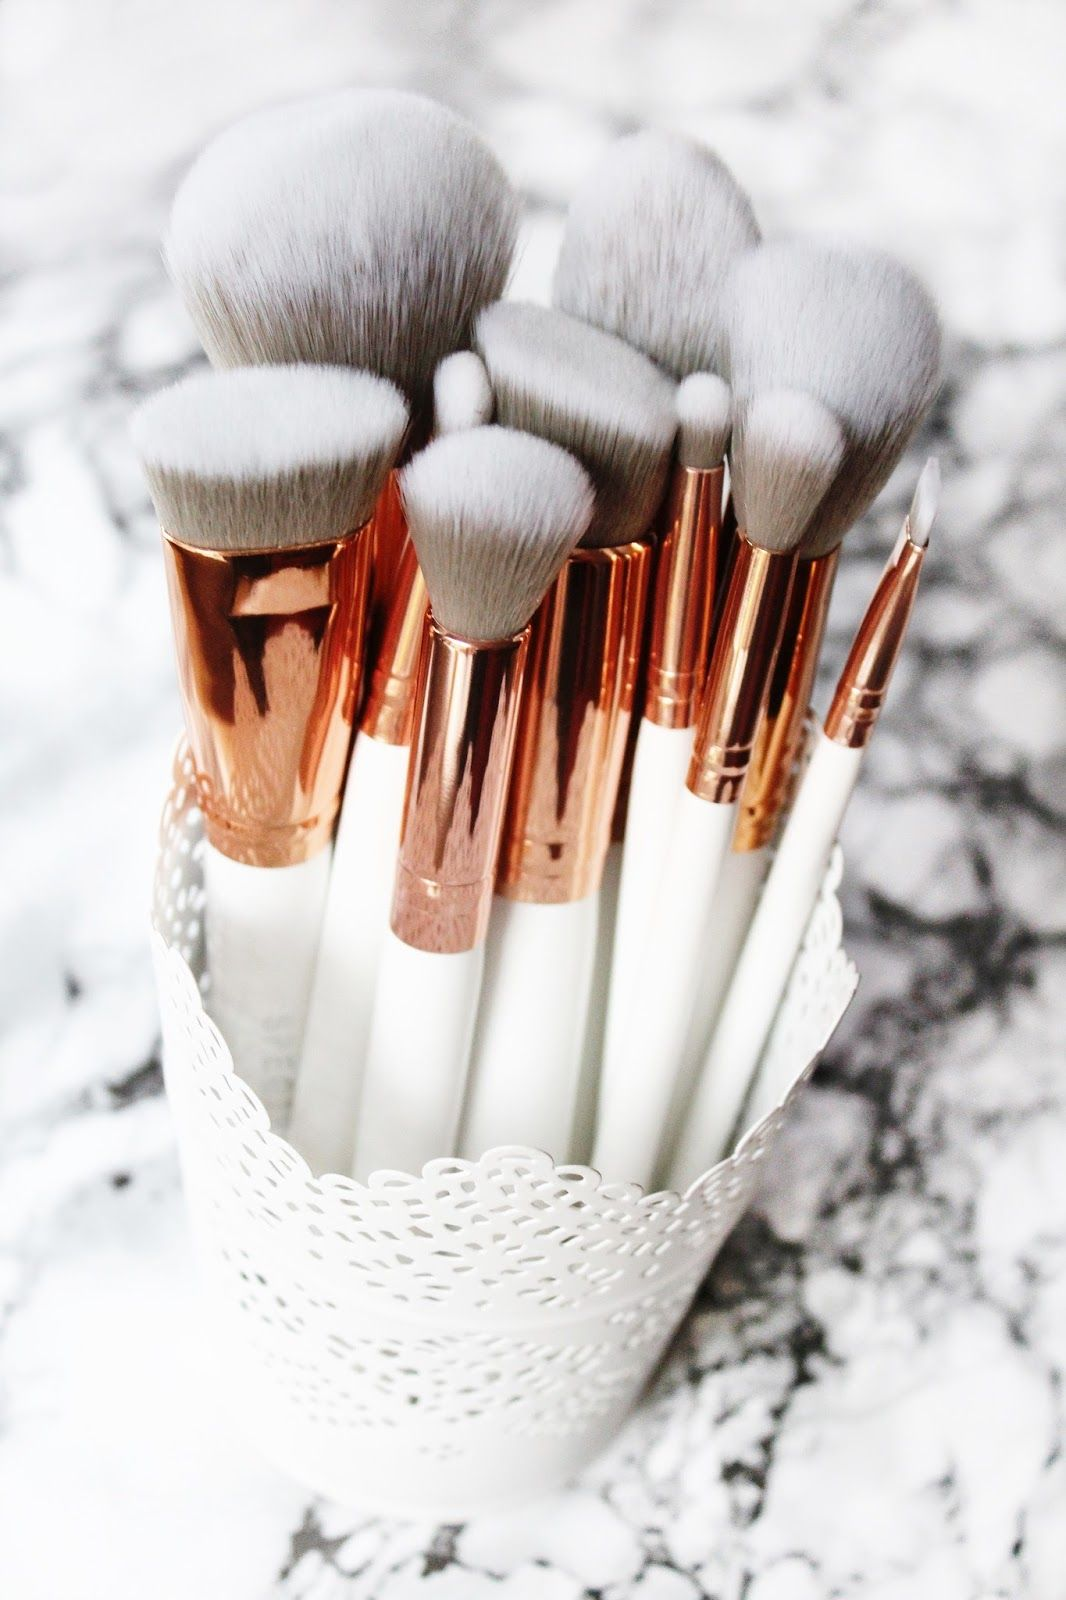 Spectrum Collections Brushes Marbleous 12 Piece Set